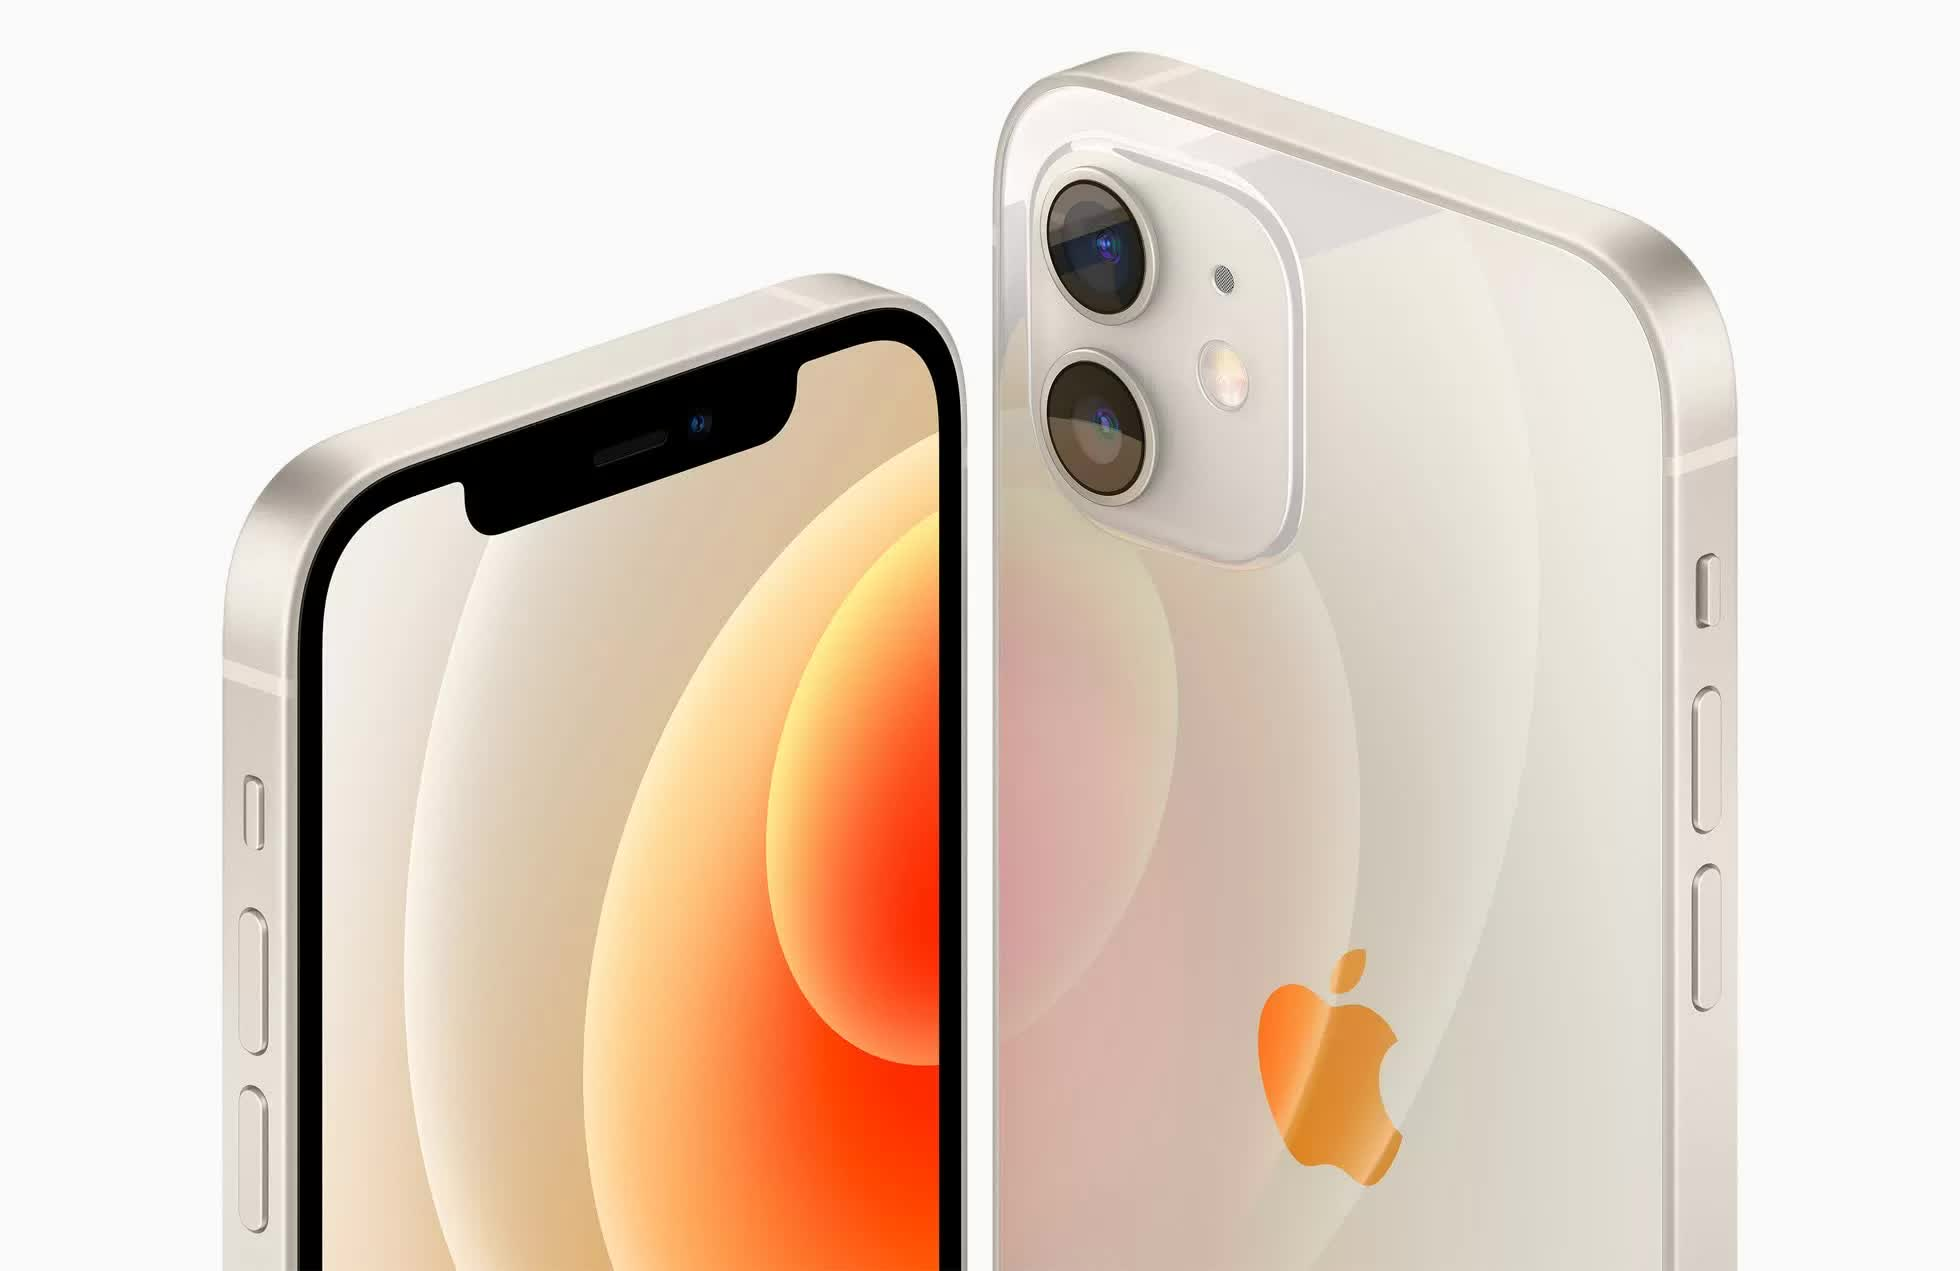 Apple's iPhone 13 expected to revert to the usual release schedule in 2021